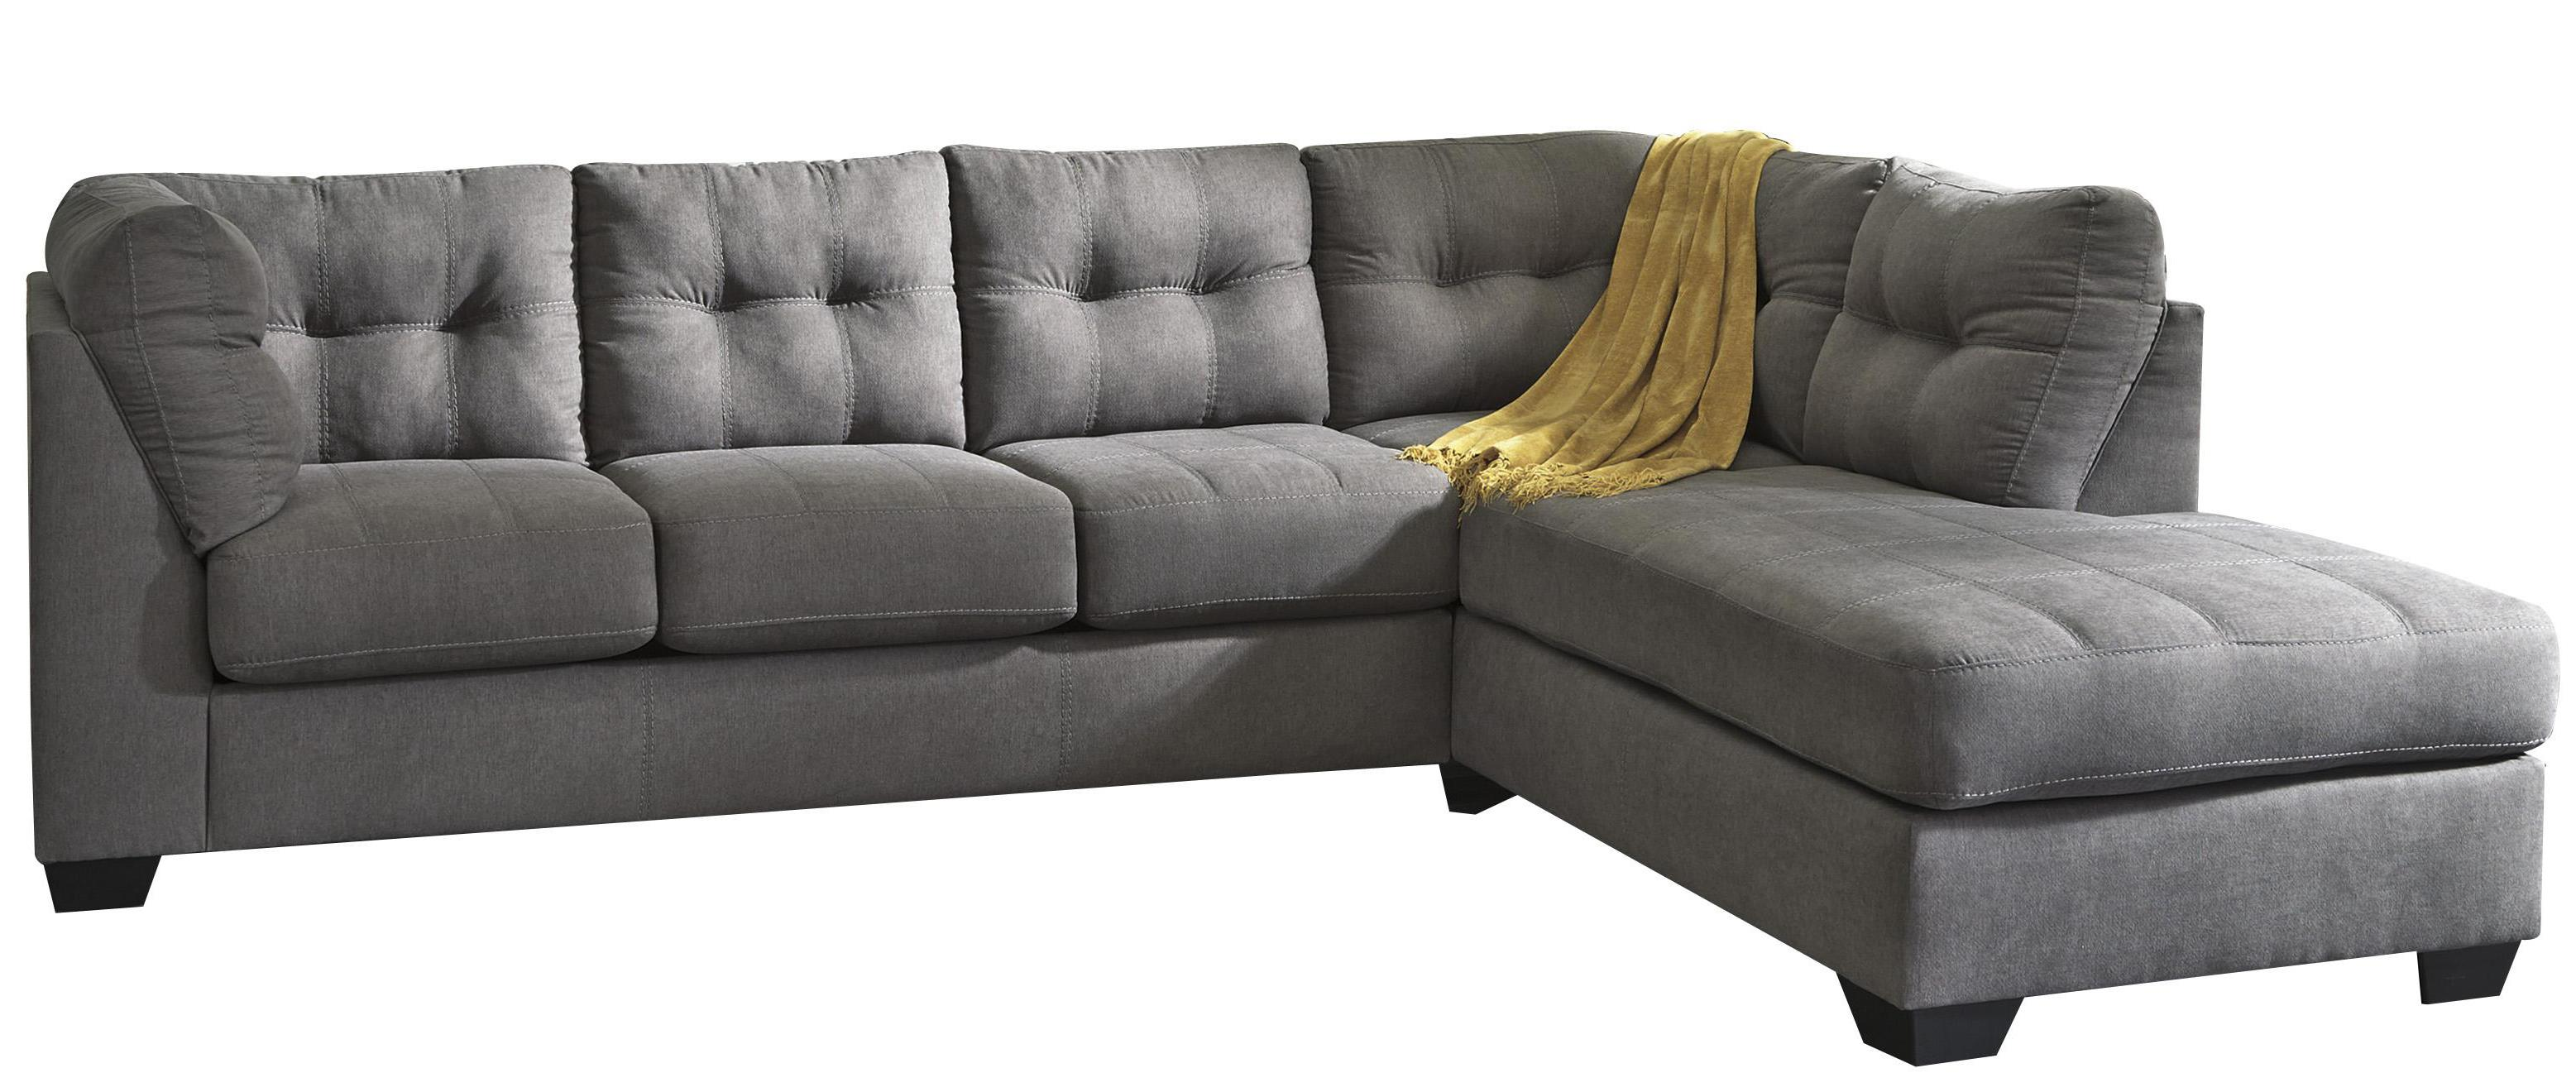 Malcolm - Charcoal 2-Piece Sectional with Right Chaise by Trendz at Ruby Gordon Home